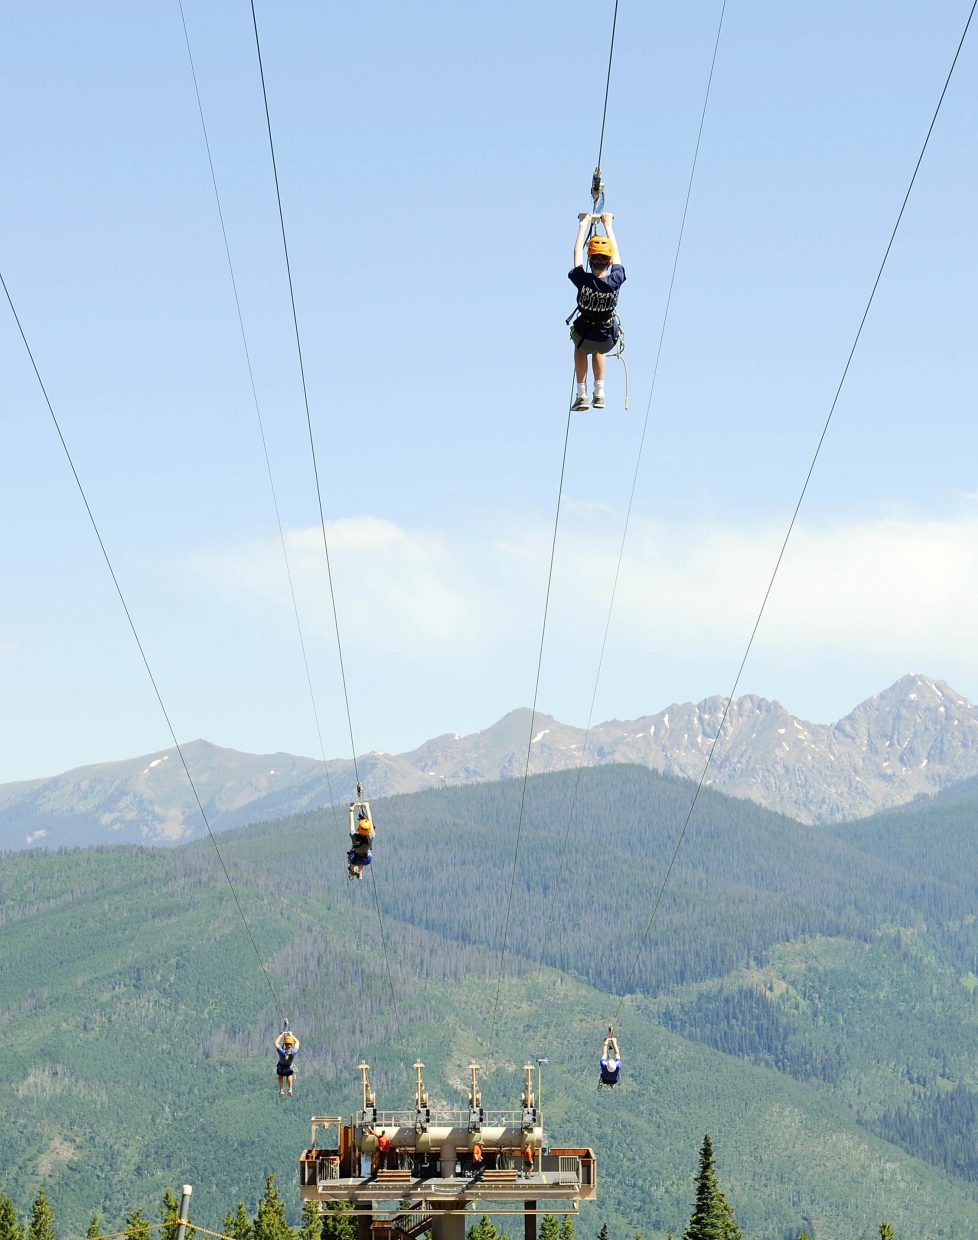 People ride down the zip lines at Vail's Epic Discovery.